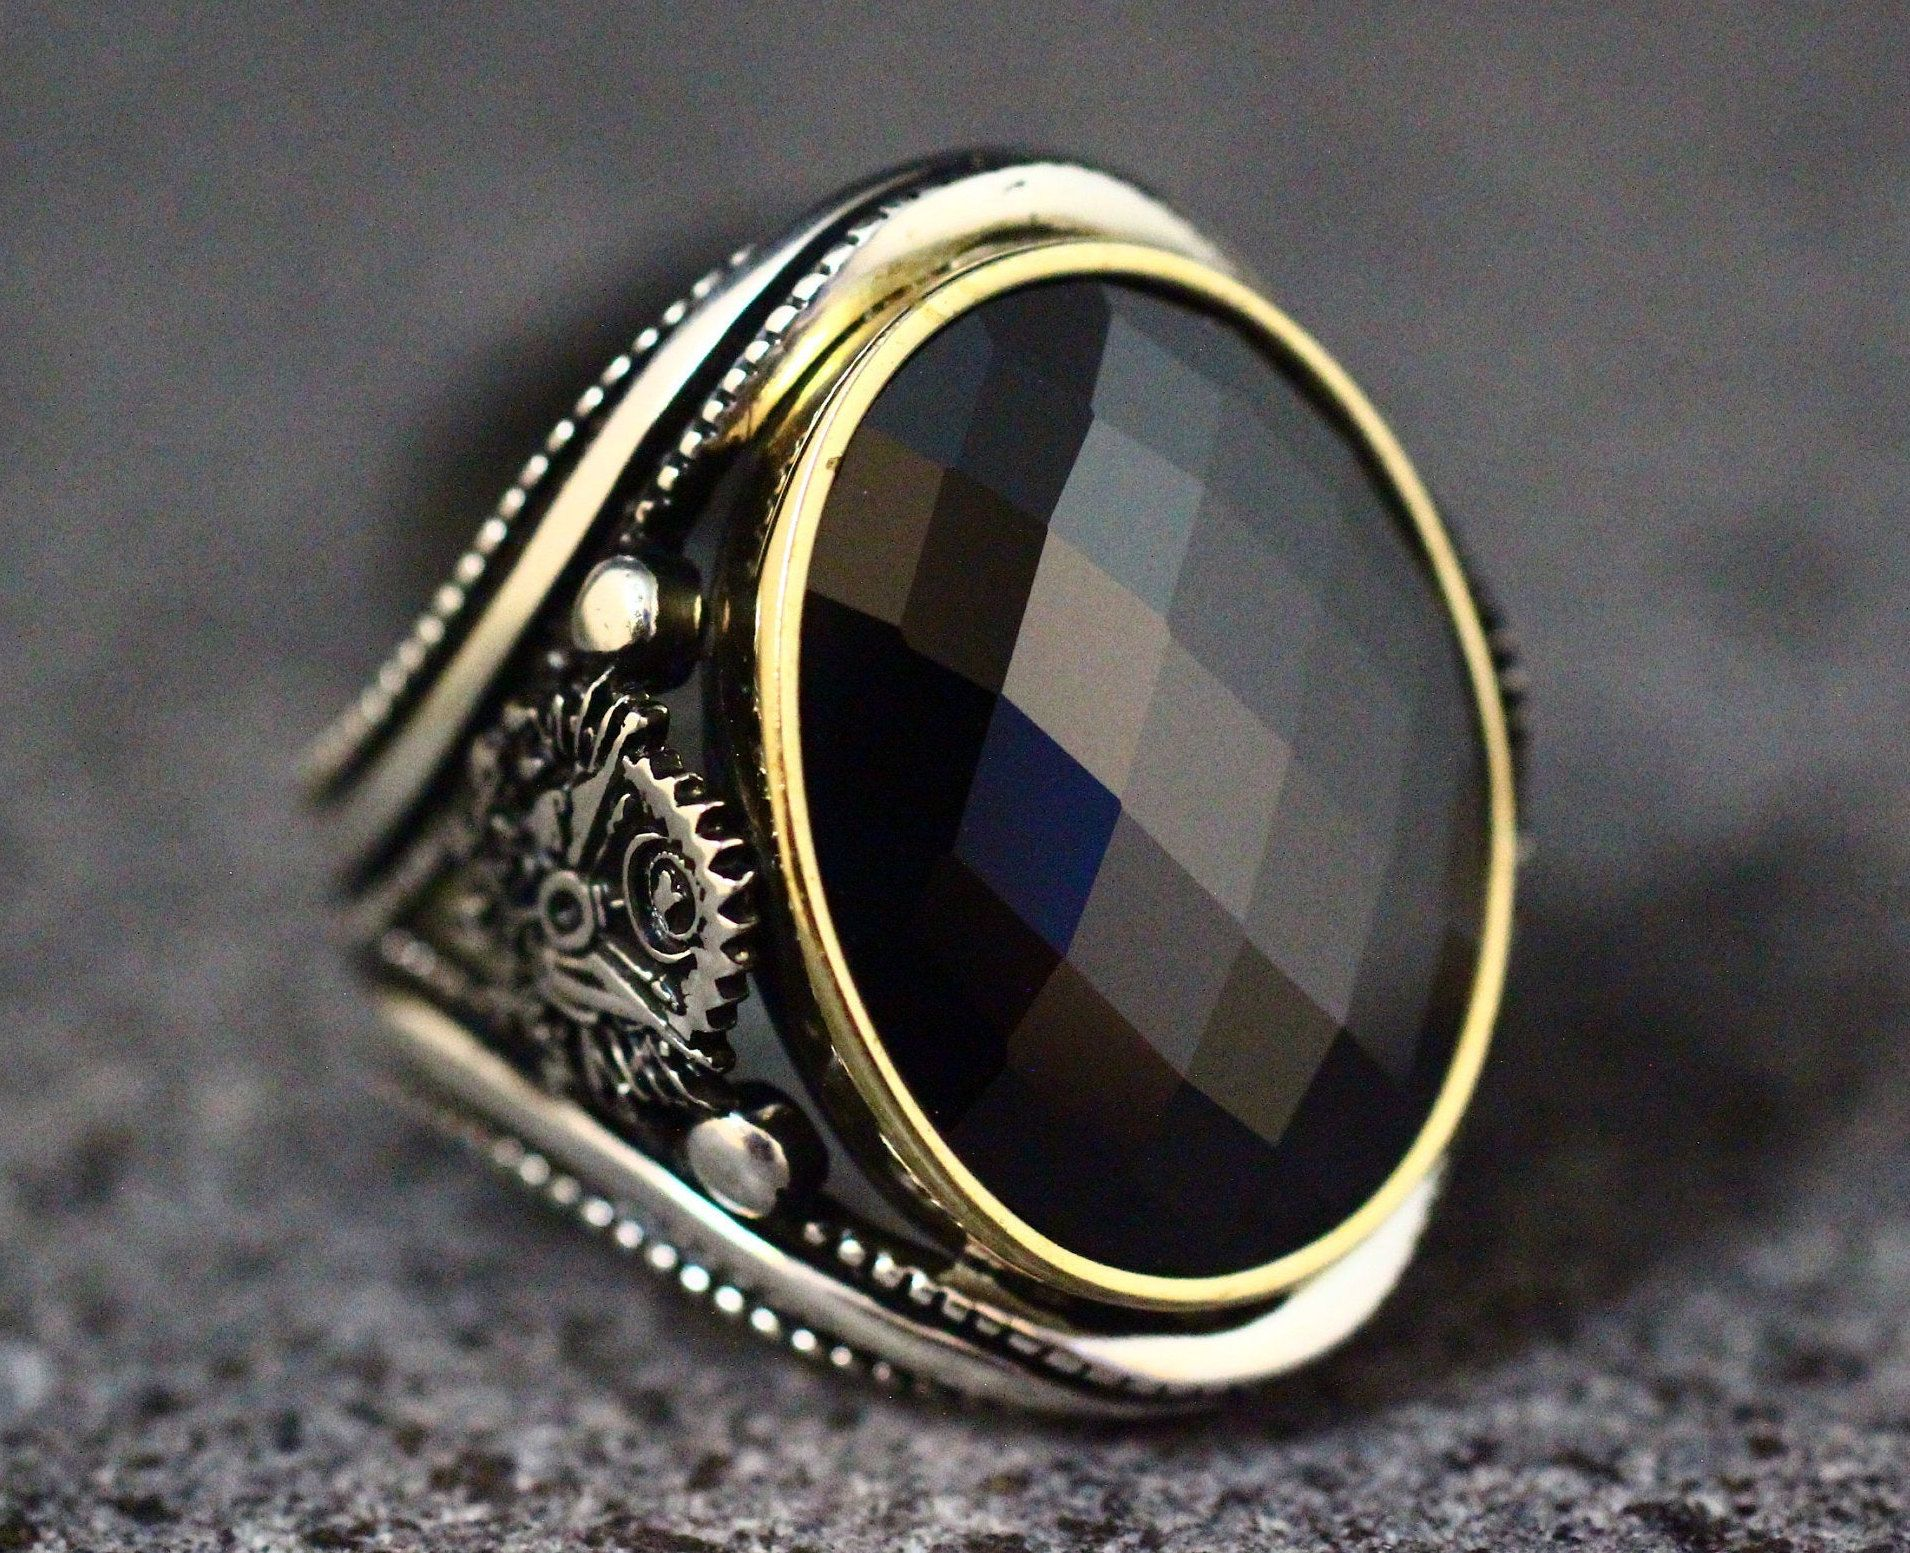 Ring Real sterling silver 925 art design jewelry free express shipping ring Gift Mens gift Ring Handmade Silver Onyx Men Rings